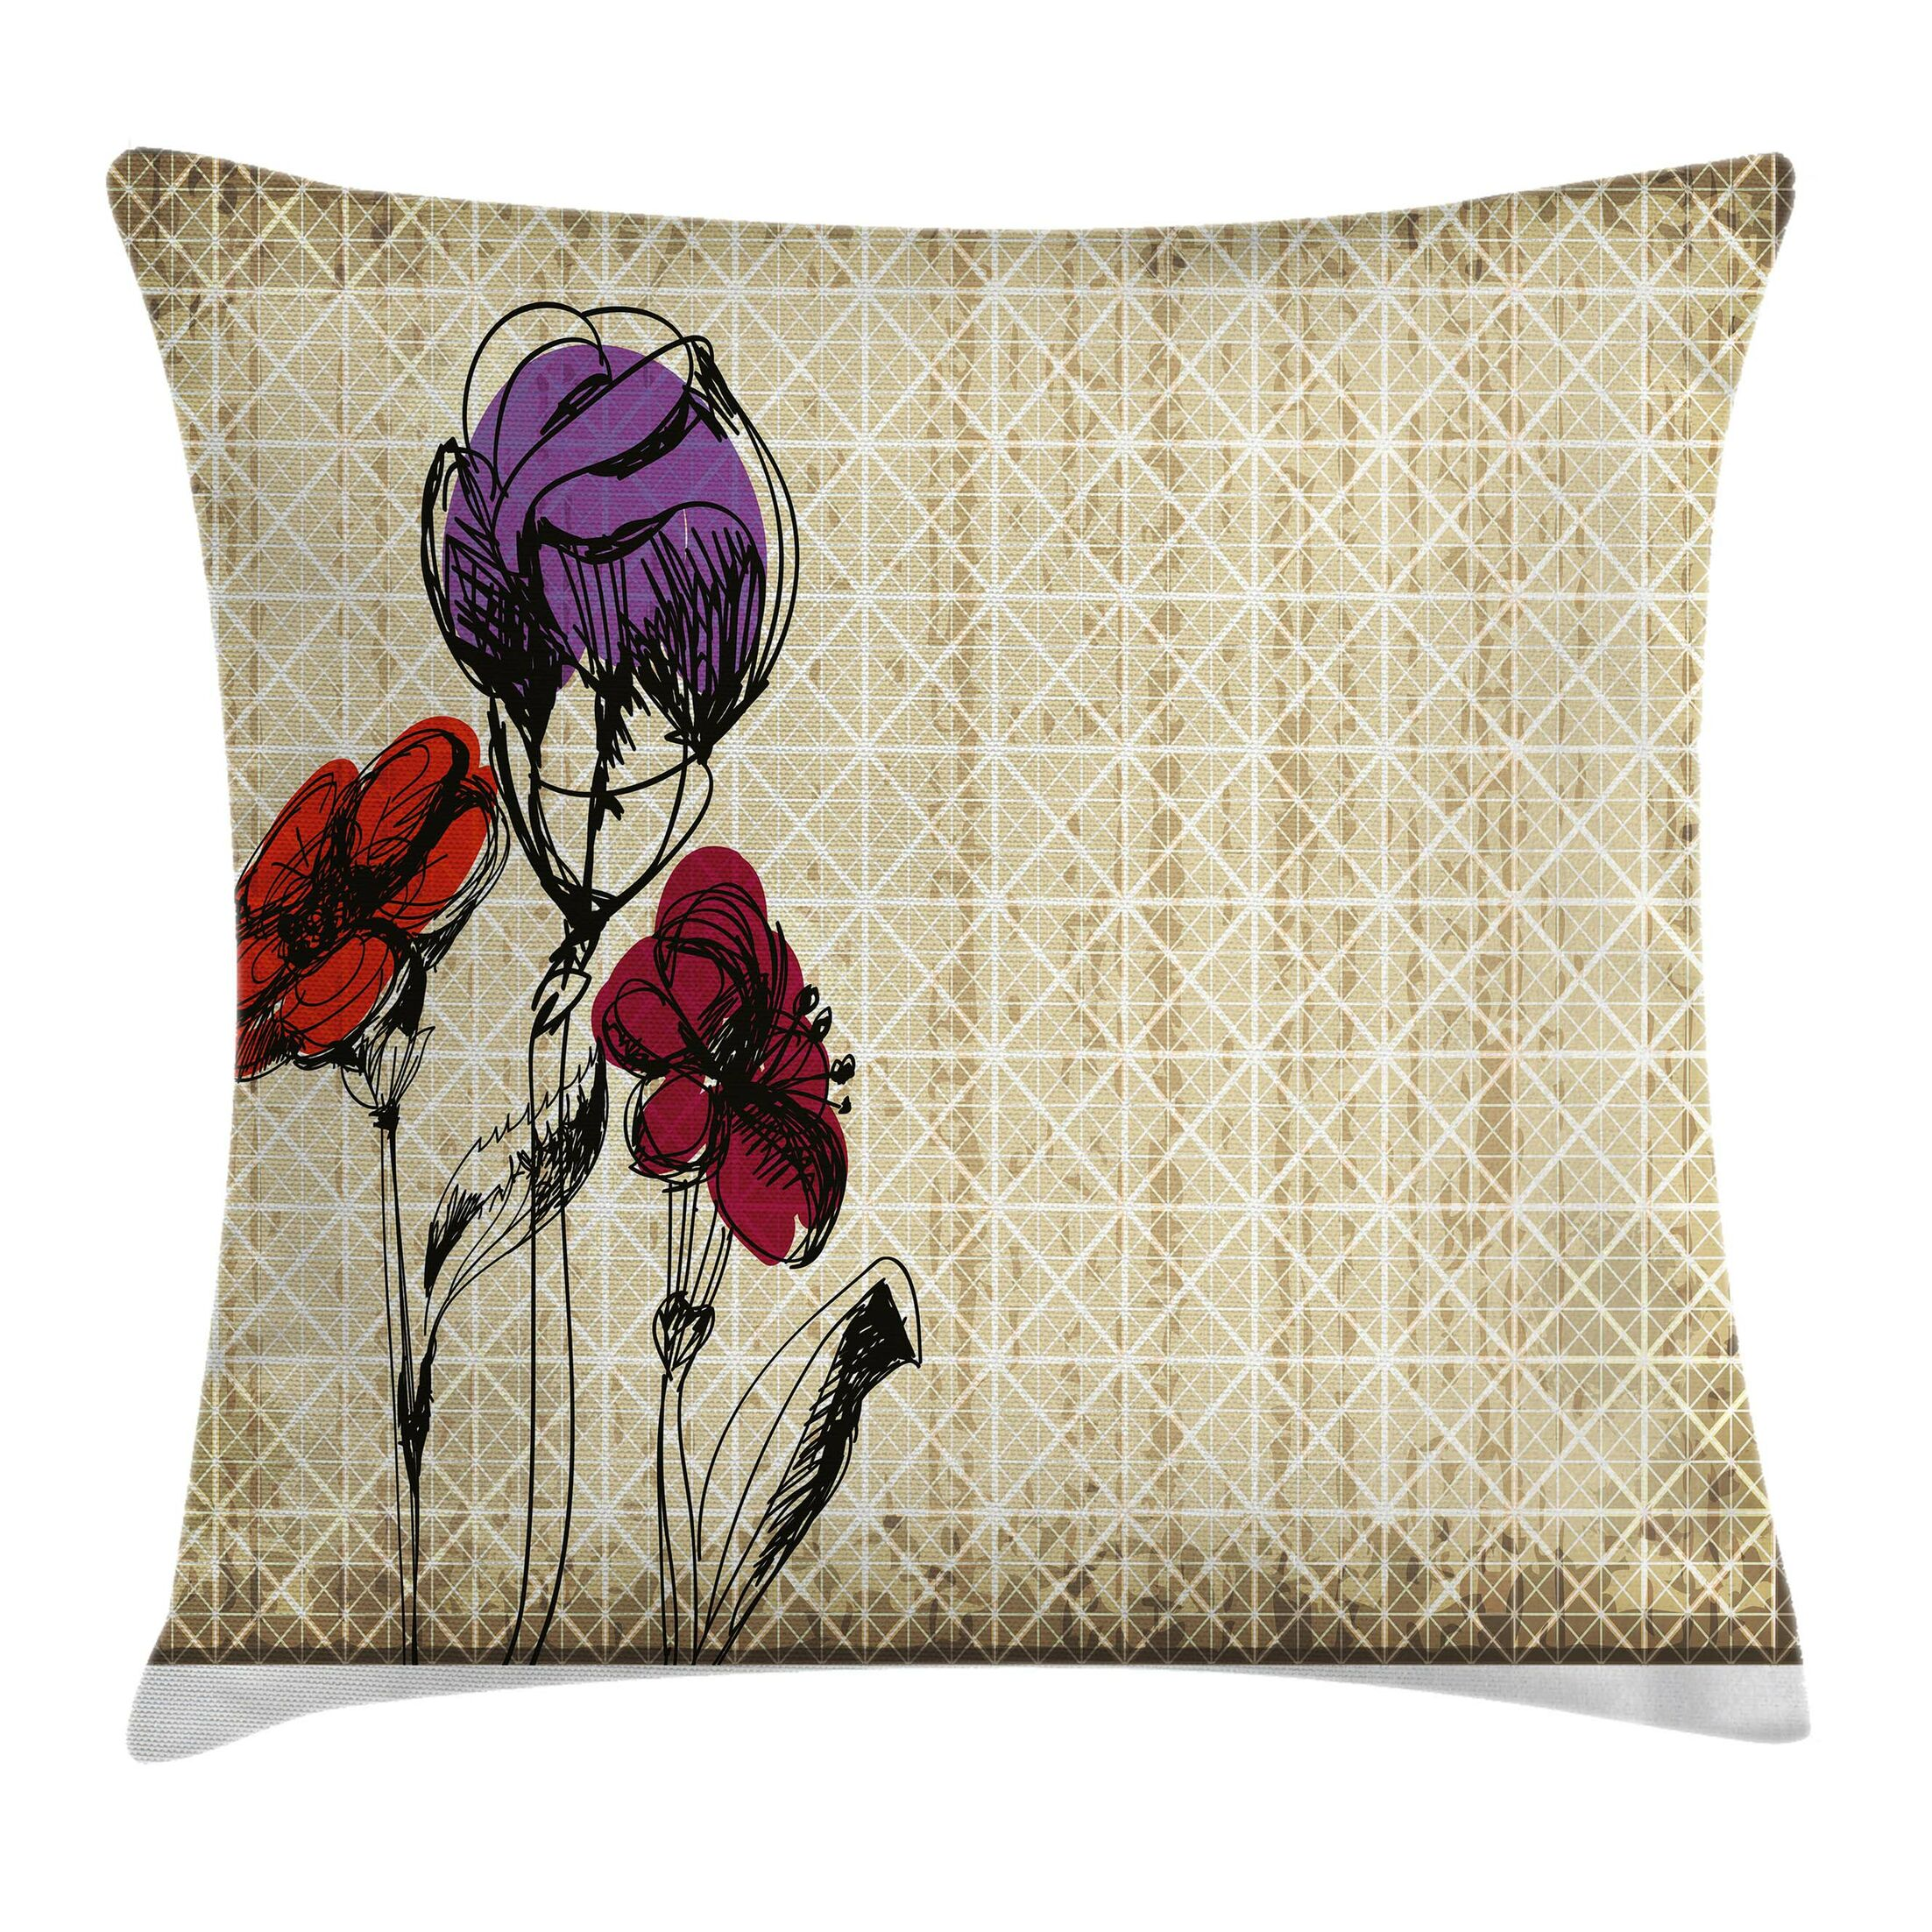 Sketchy Flower Petals Grunge Pillow Cover Size: 16